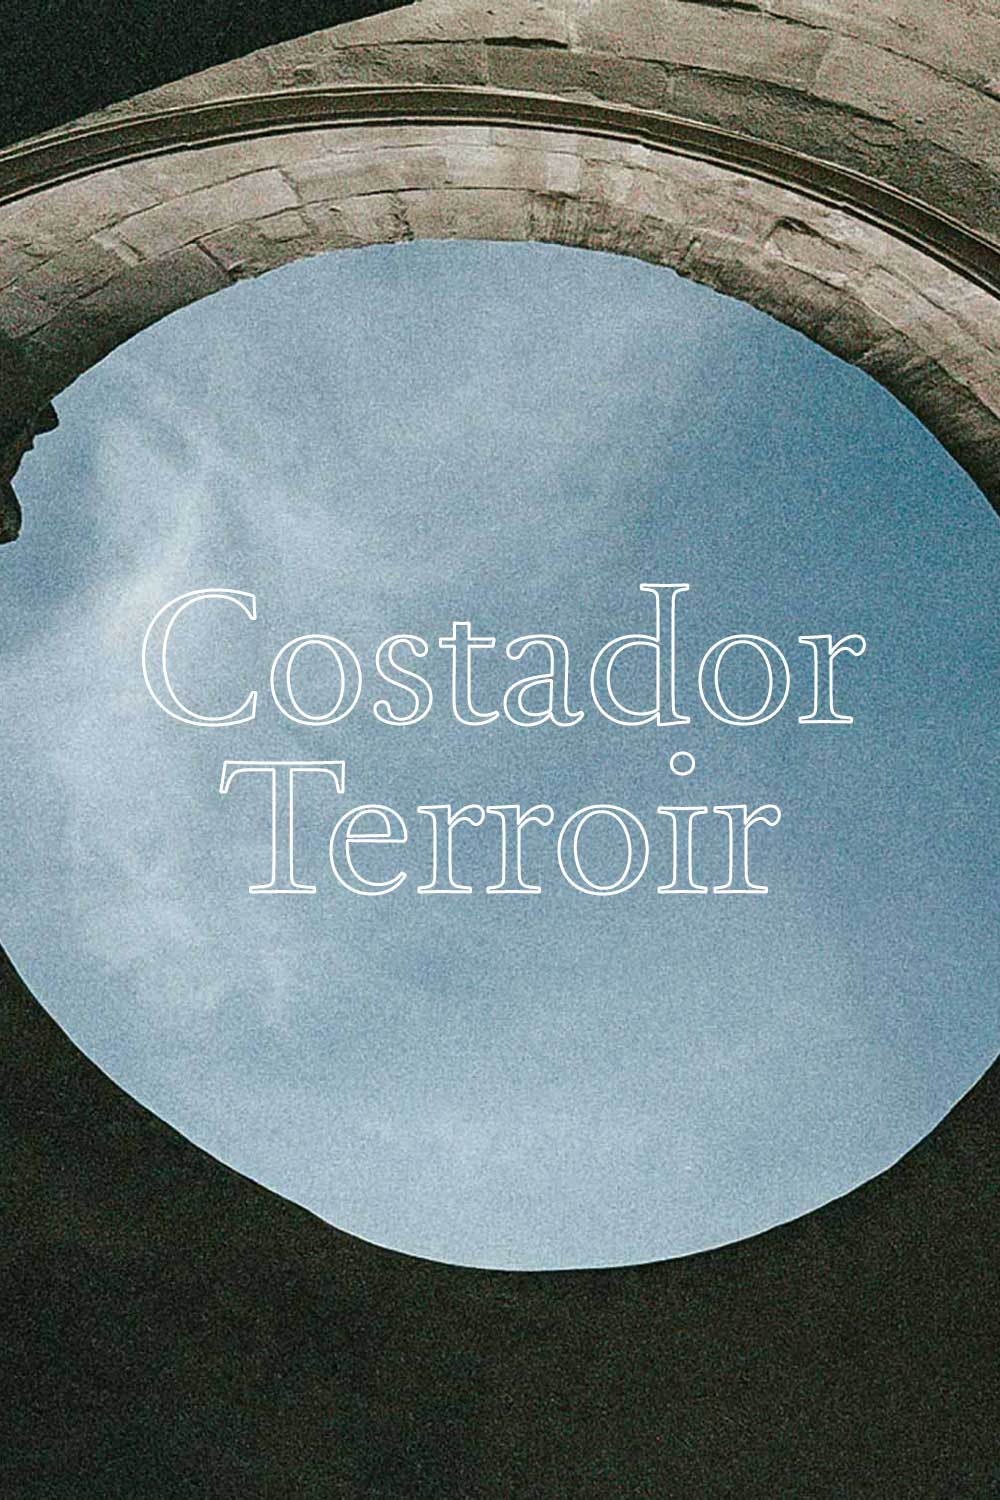 Costador Terroirs Mediterranis  —  More than just a winery, it is an adventure to discover the most difficult destinations in wine making, and Joan Franquet, its wine artisan, is the ultimate explorer. Joan starts his journey with the most difficult grapes to grow, almost extinct varietals from high altitude vineyards.  - APPELLATION CATALUNYA